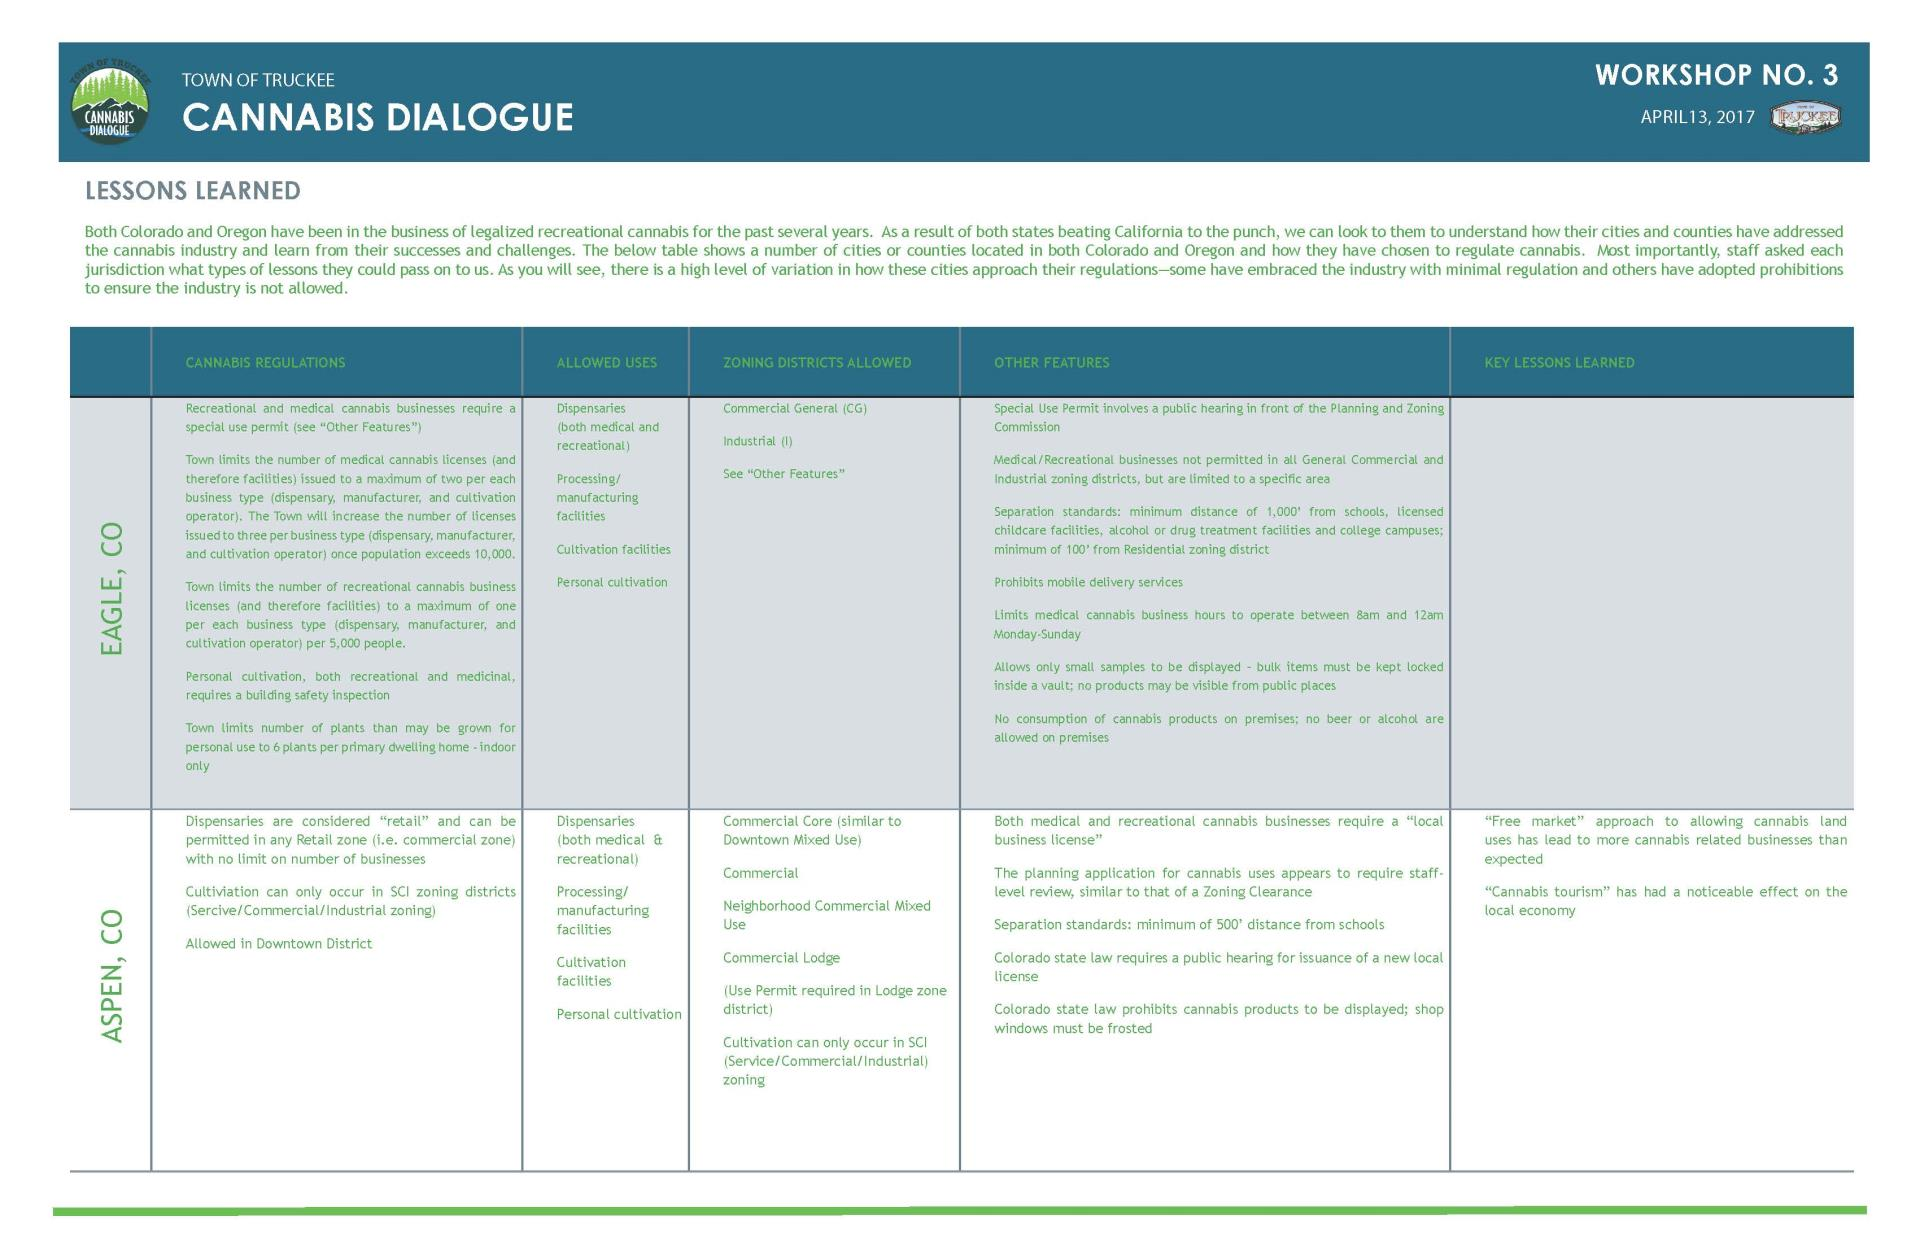 Cannabis Dialogue Workshop 3 Newsletter_Page_4